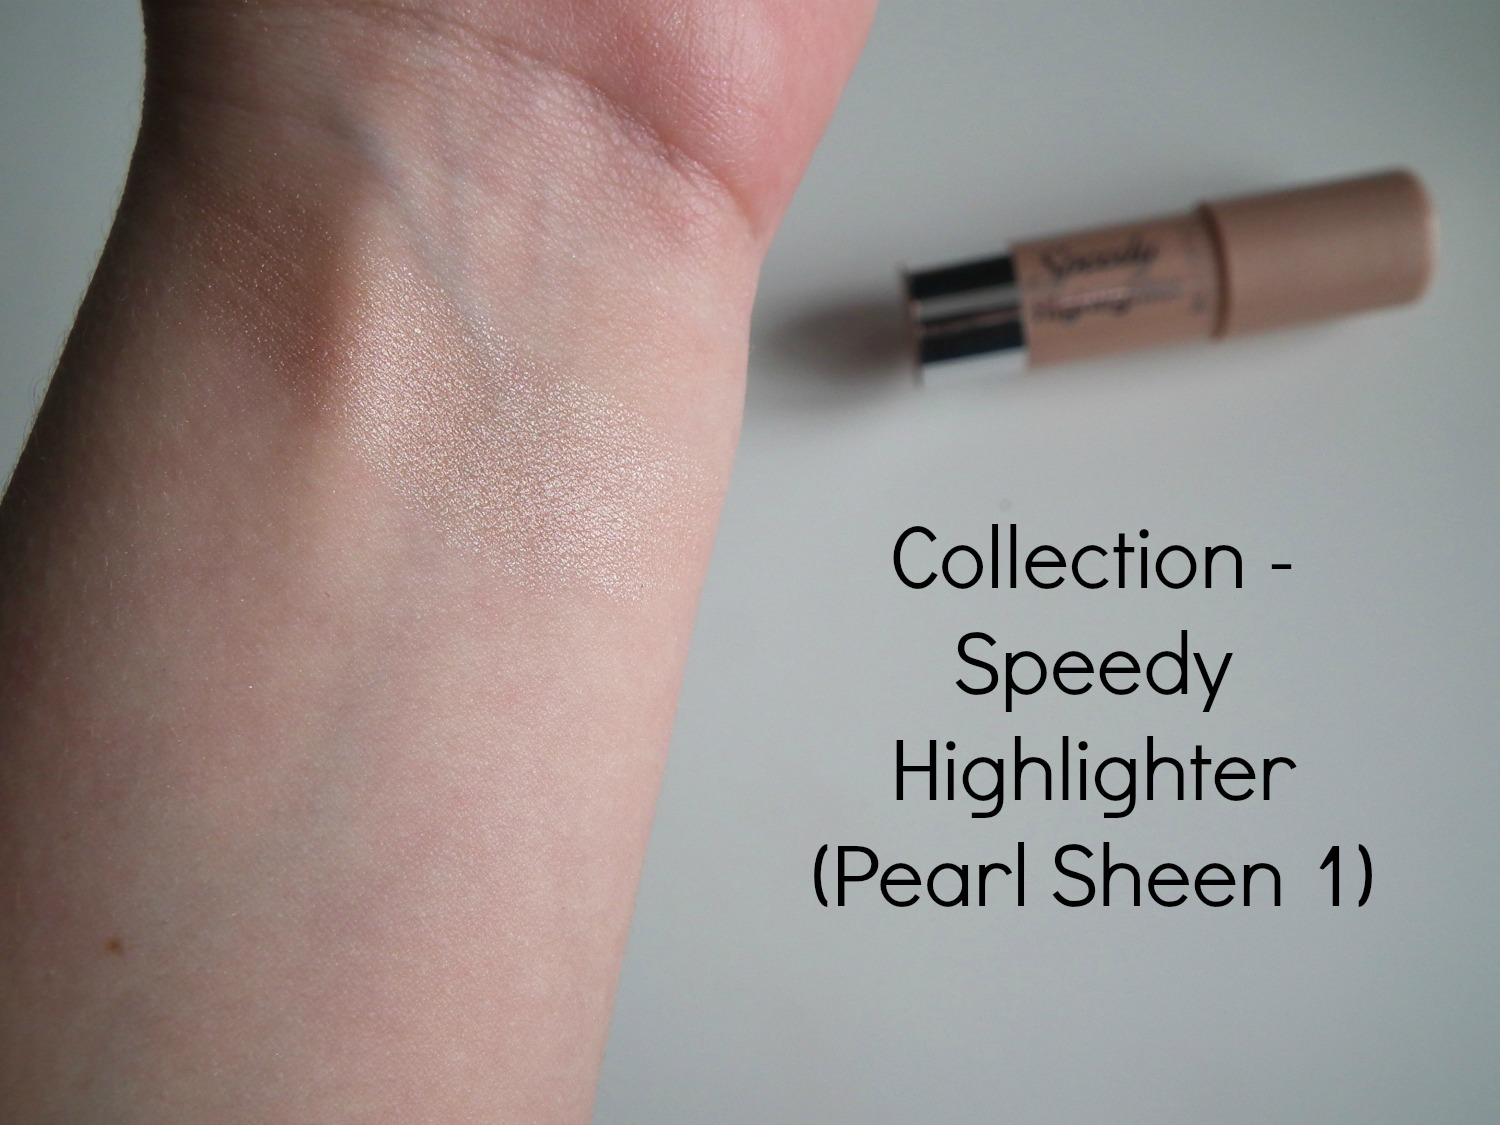 Budget Friendly Highlighters Collection Speedy Highlighter